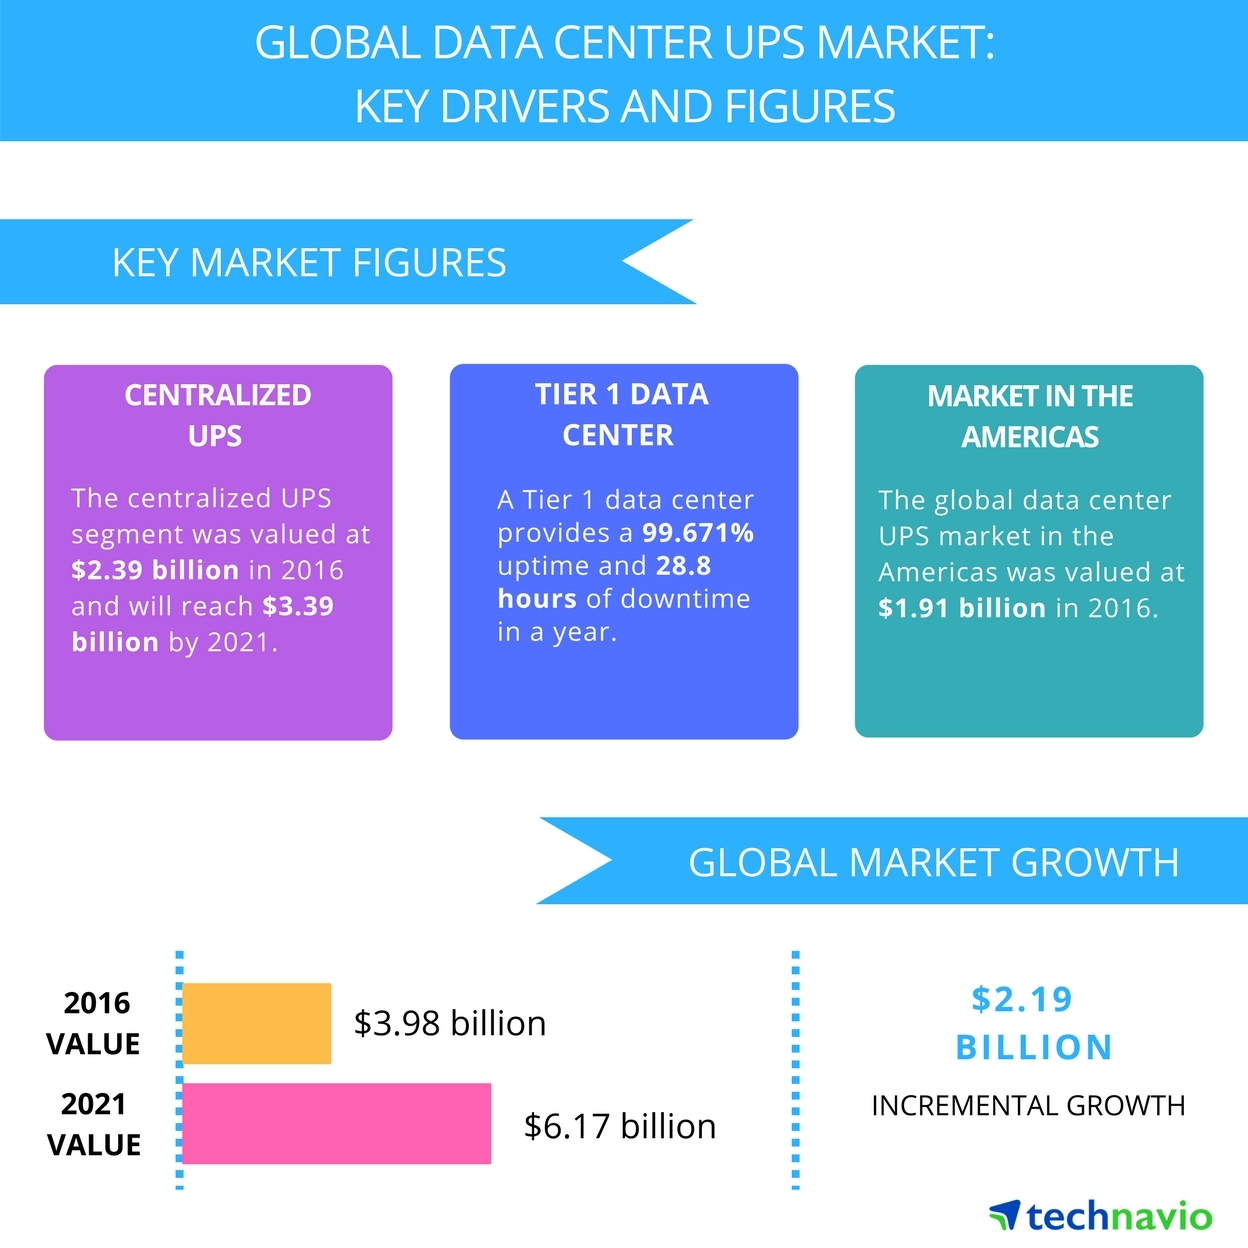 Best Uninterruptible Power Supply 2021 Top 7 Vendors in the Global Data Center UPS Market from 2017 2021